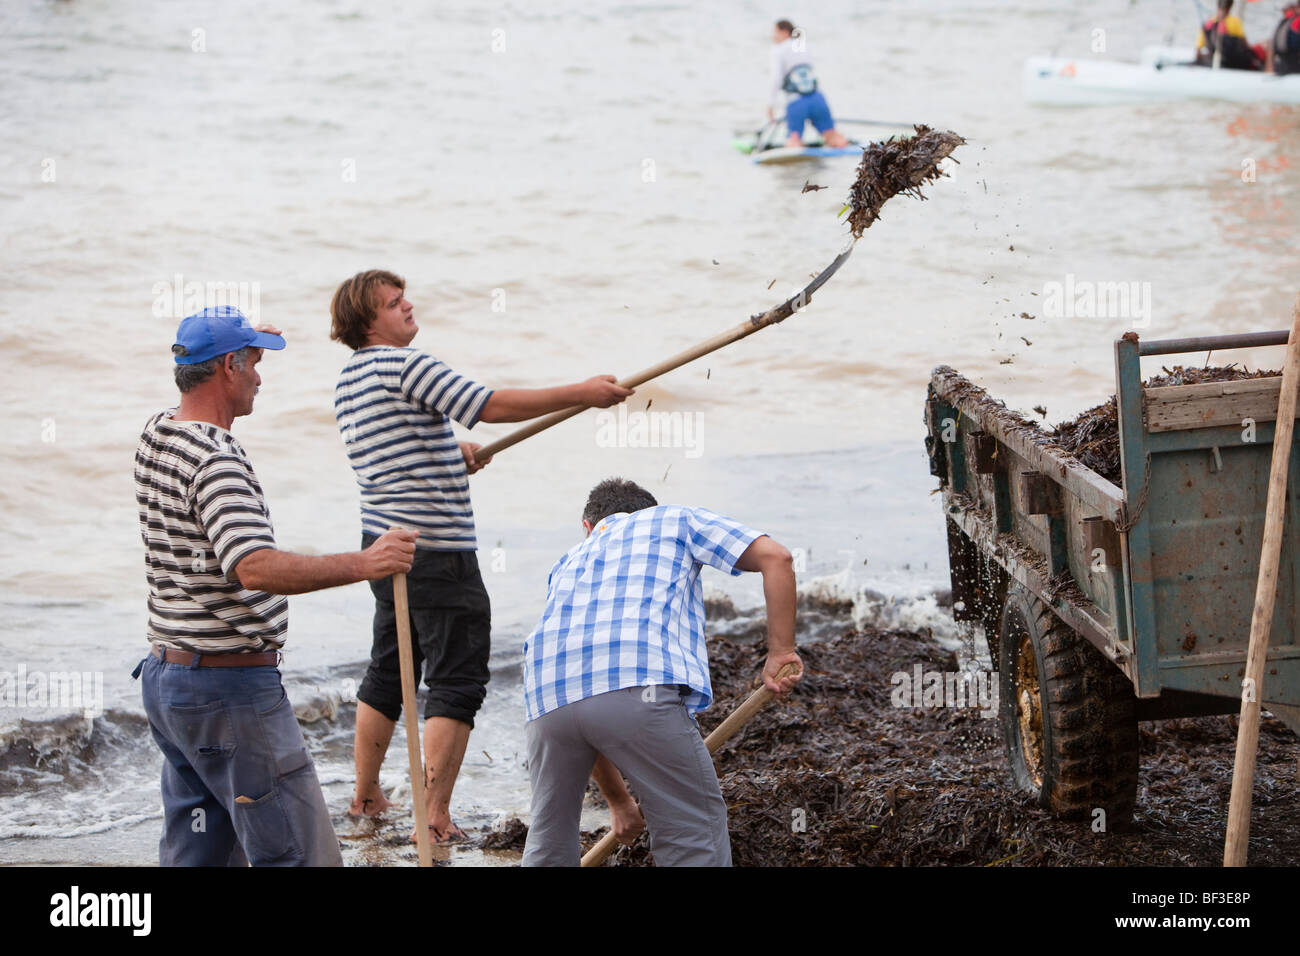 Workers shovel see weed off the beach in Teos, Turkey, after a storm. - Stock Image